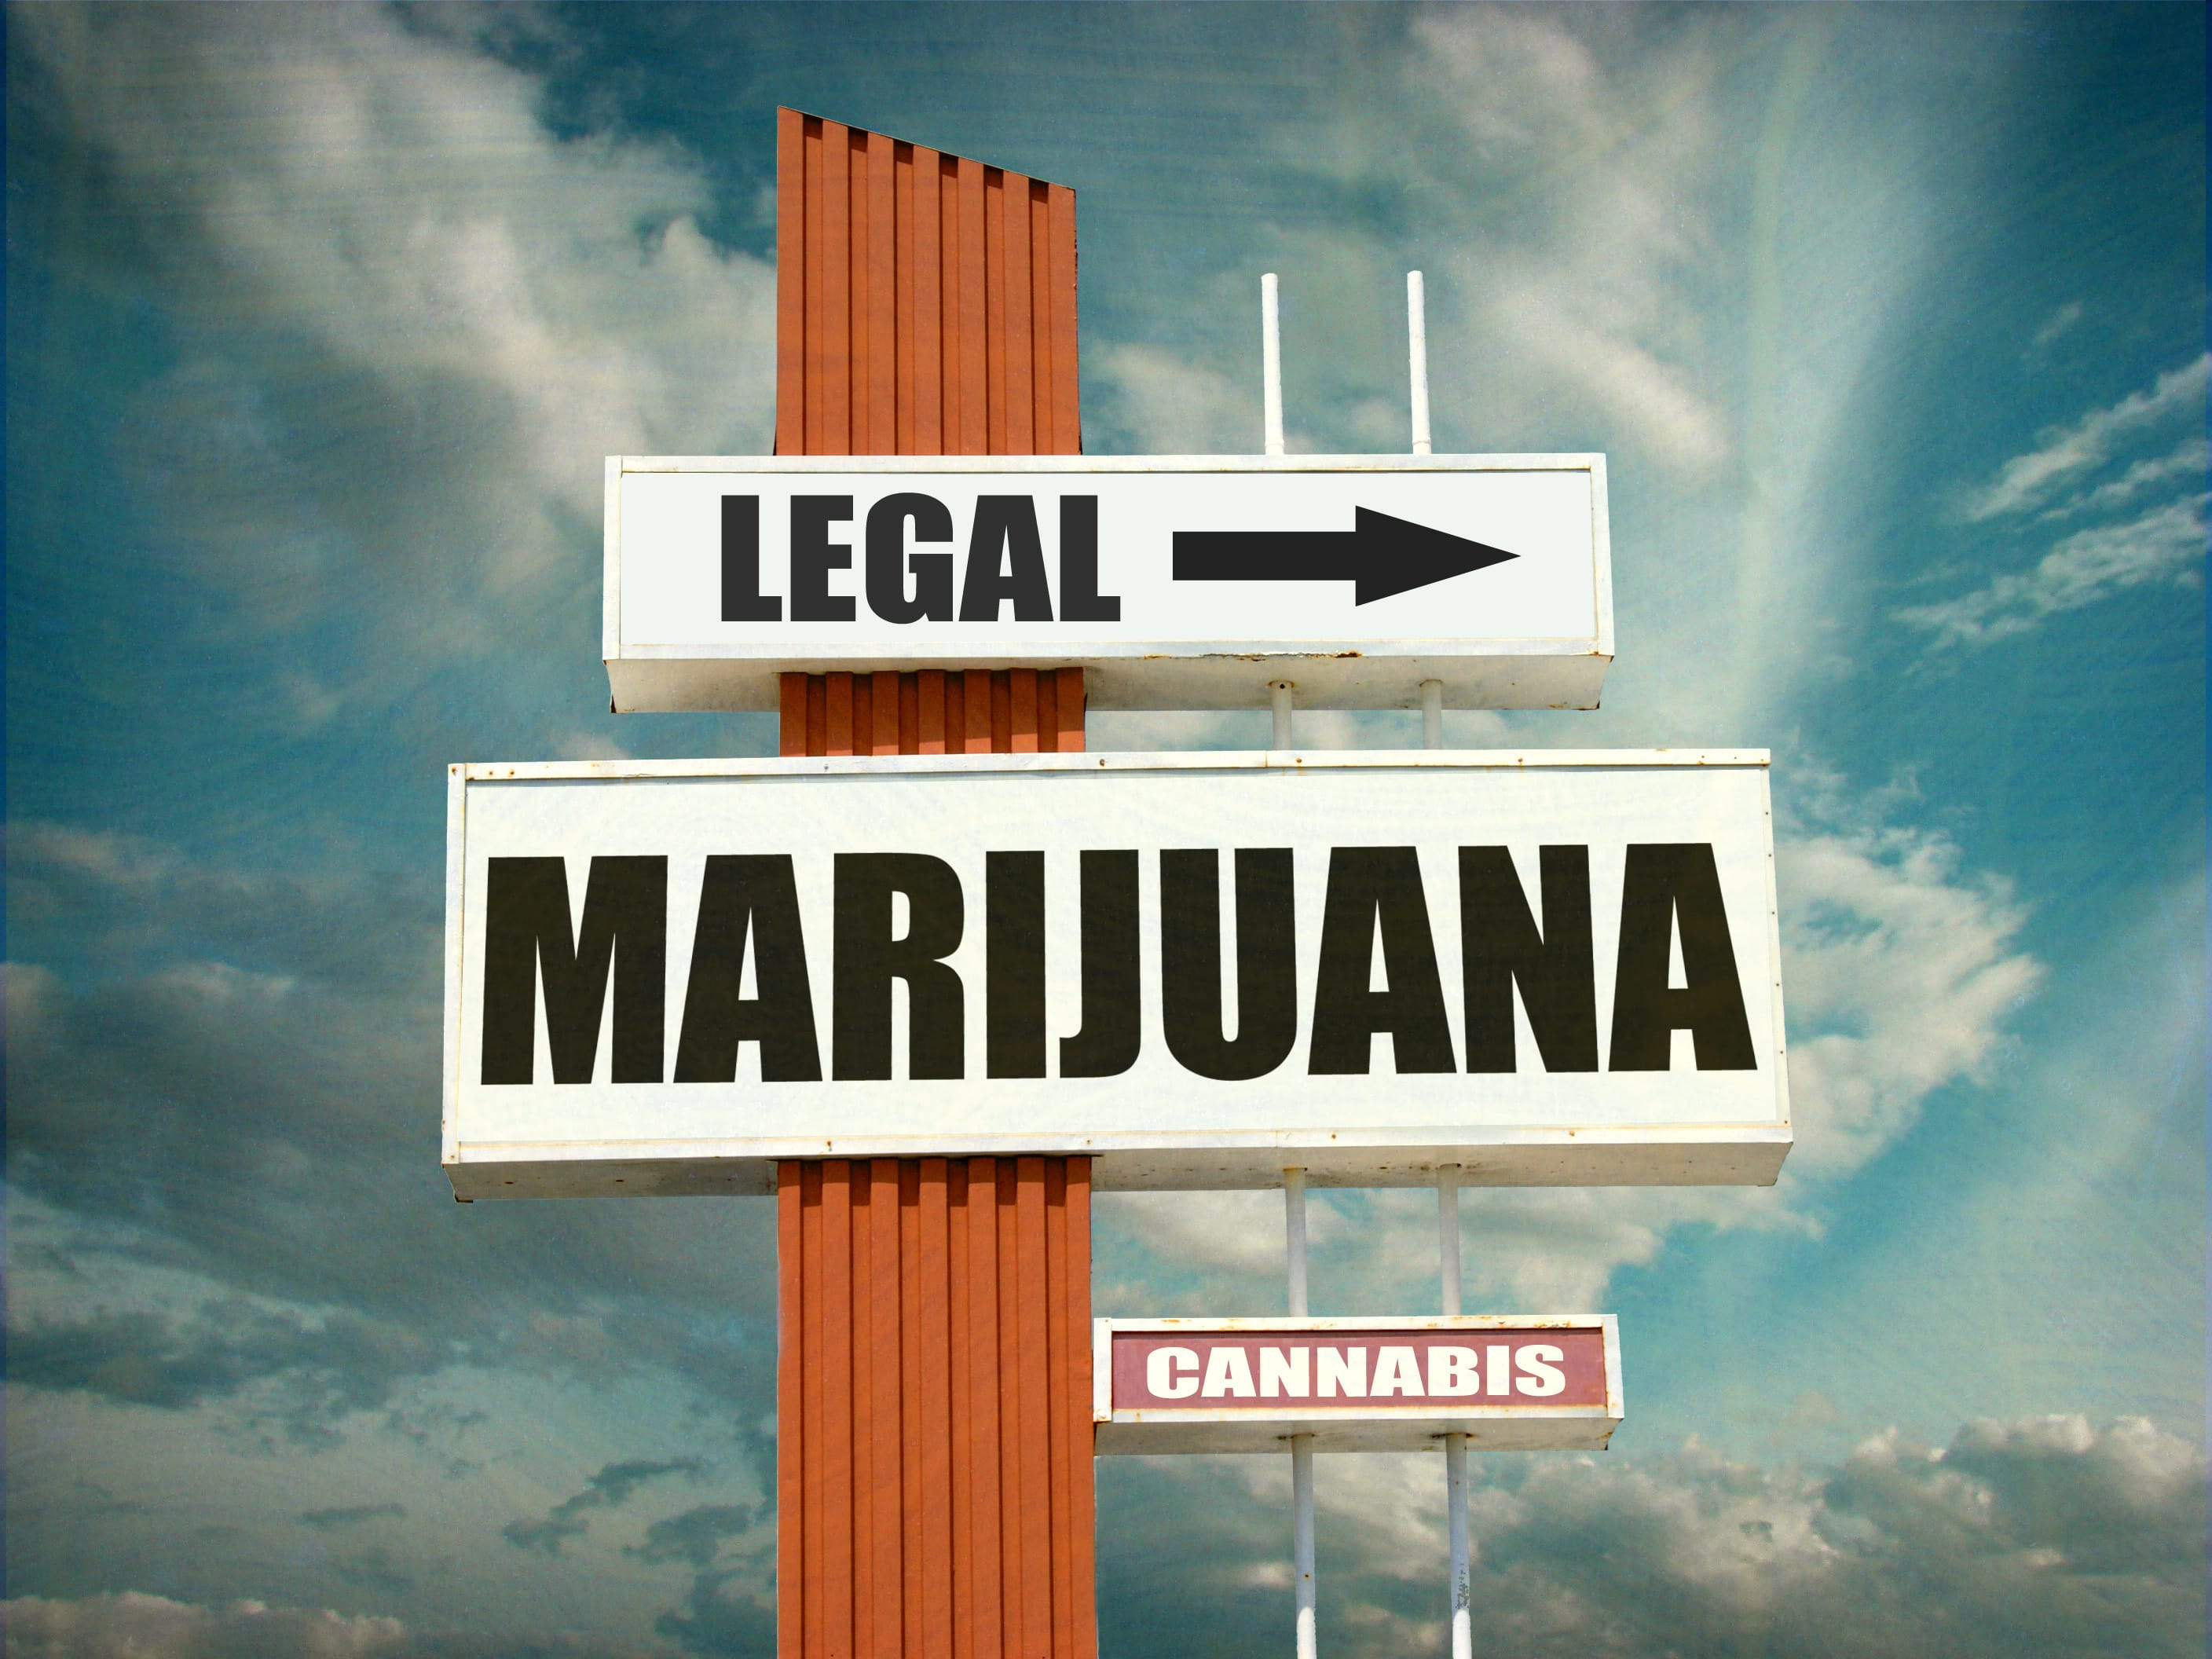 Marijuana Is Legal For The Entire West Coast